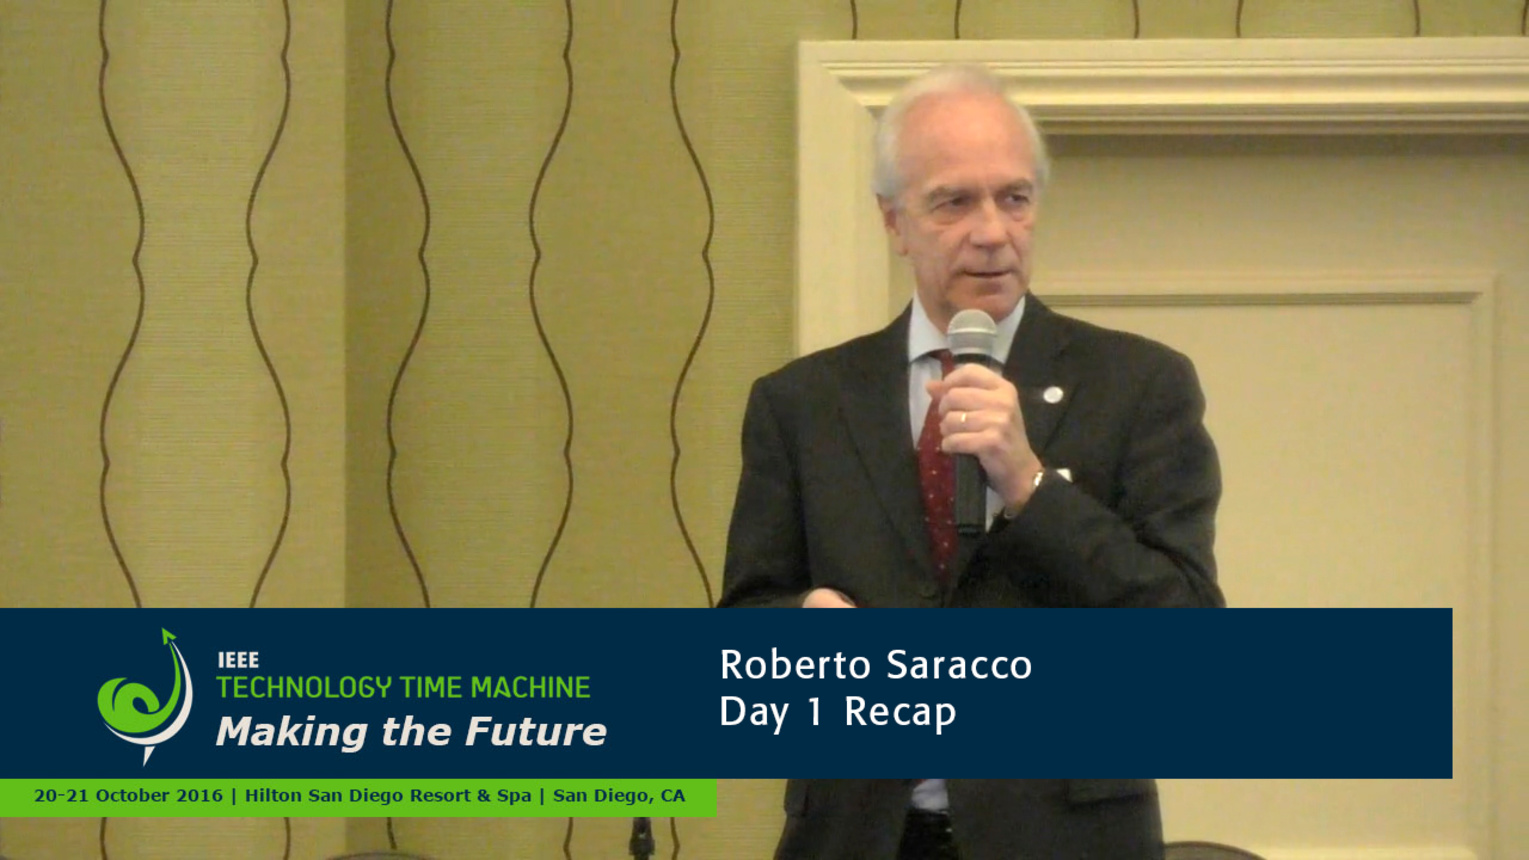 Recap of Day 1 - Roberto Saracco: 2016 Technology Time Machine